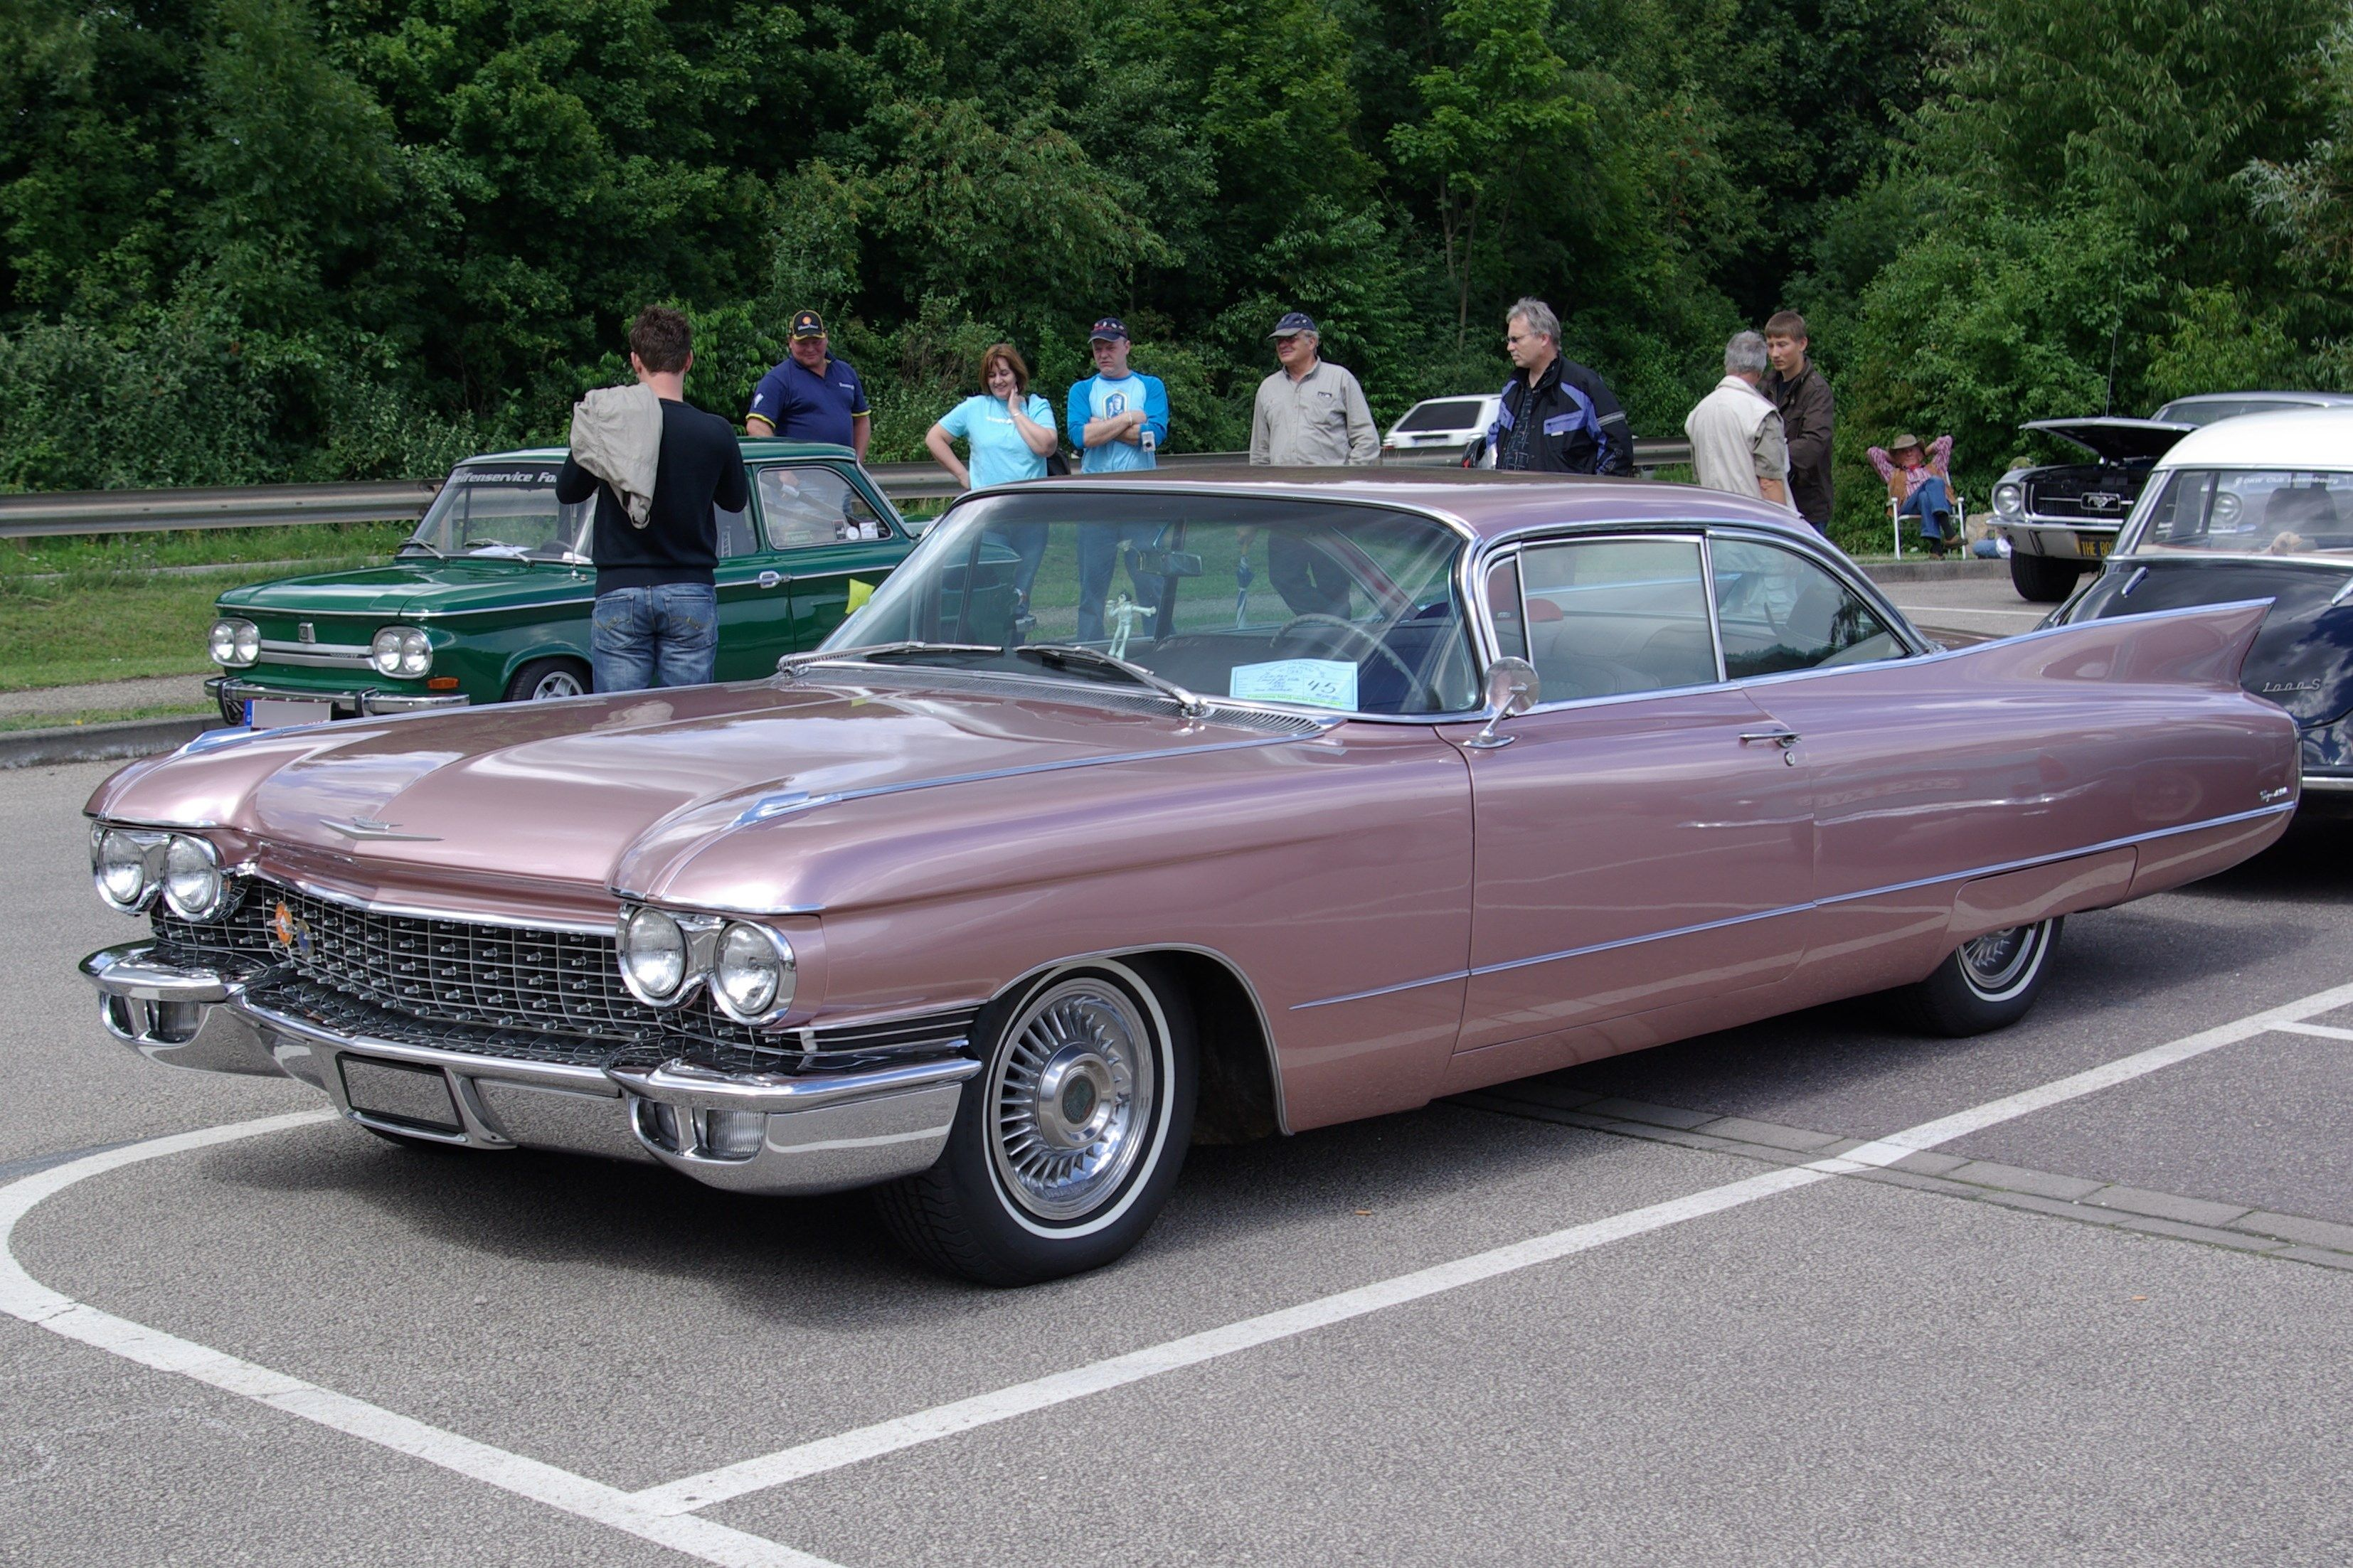 cadillac deville photos | sharovarka | Pinterest | Cadillac